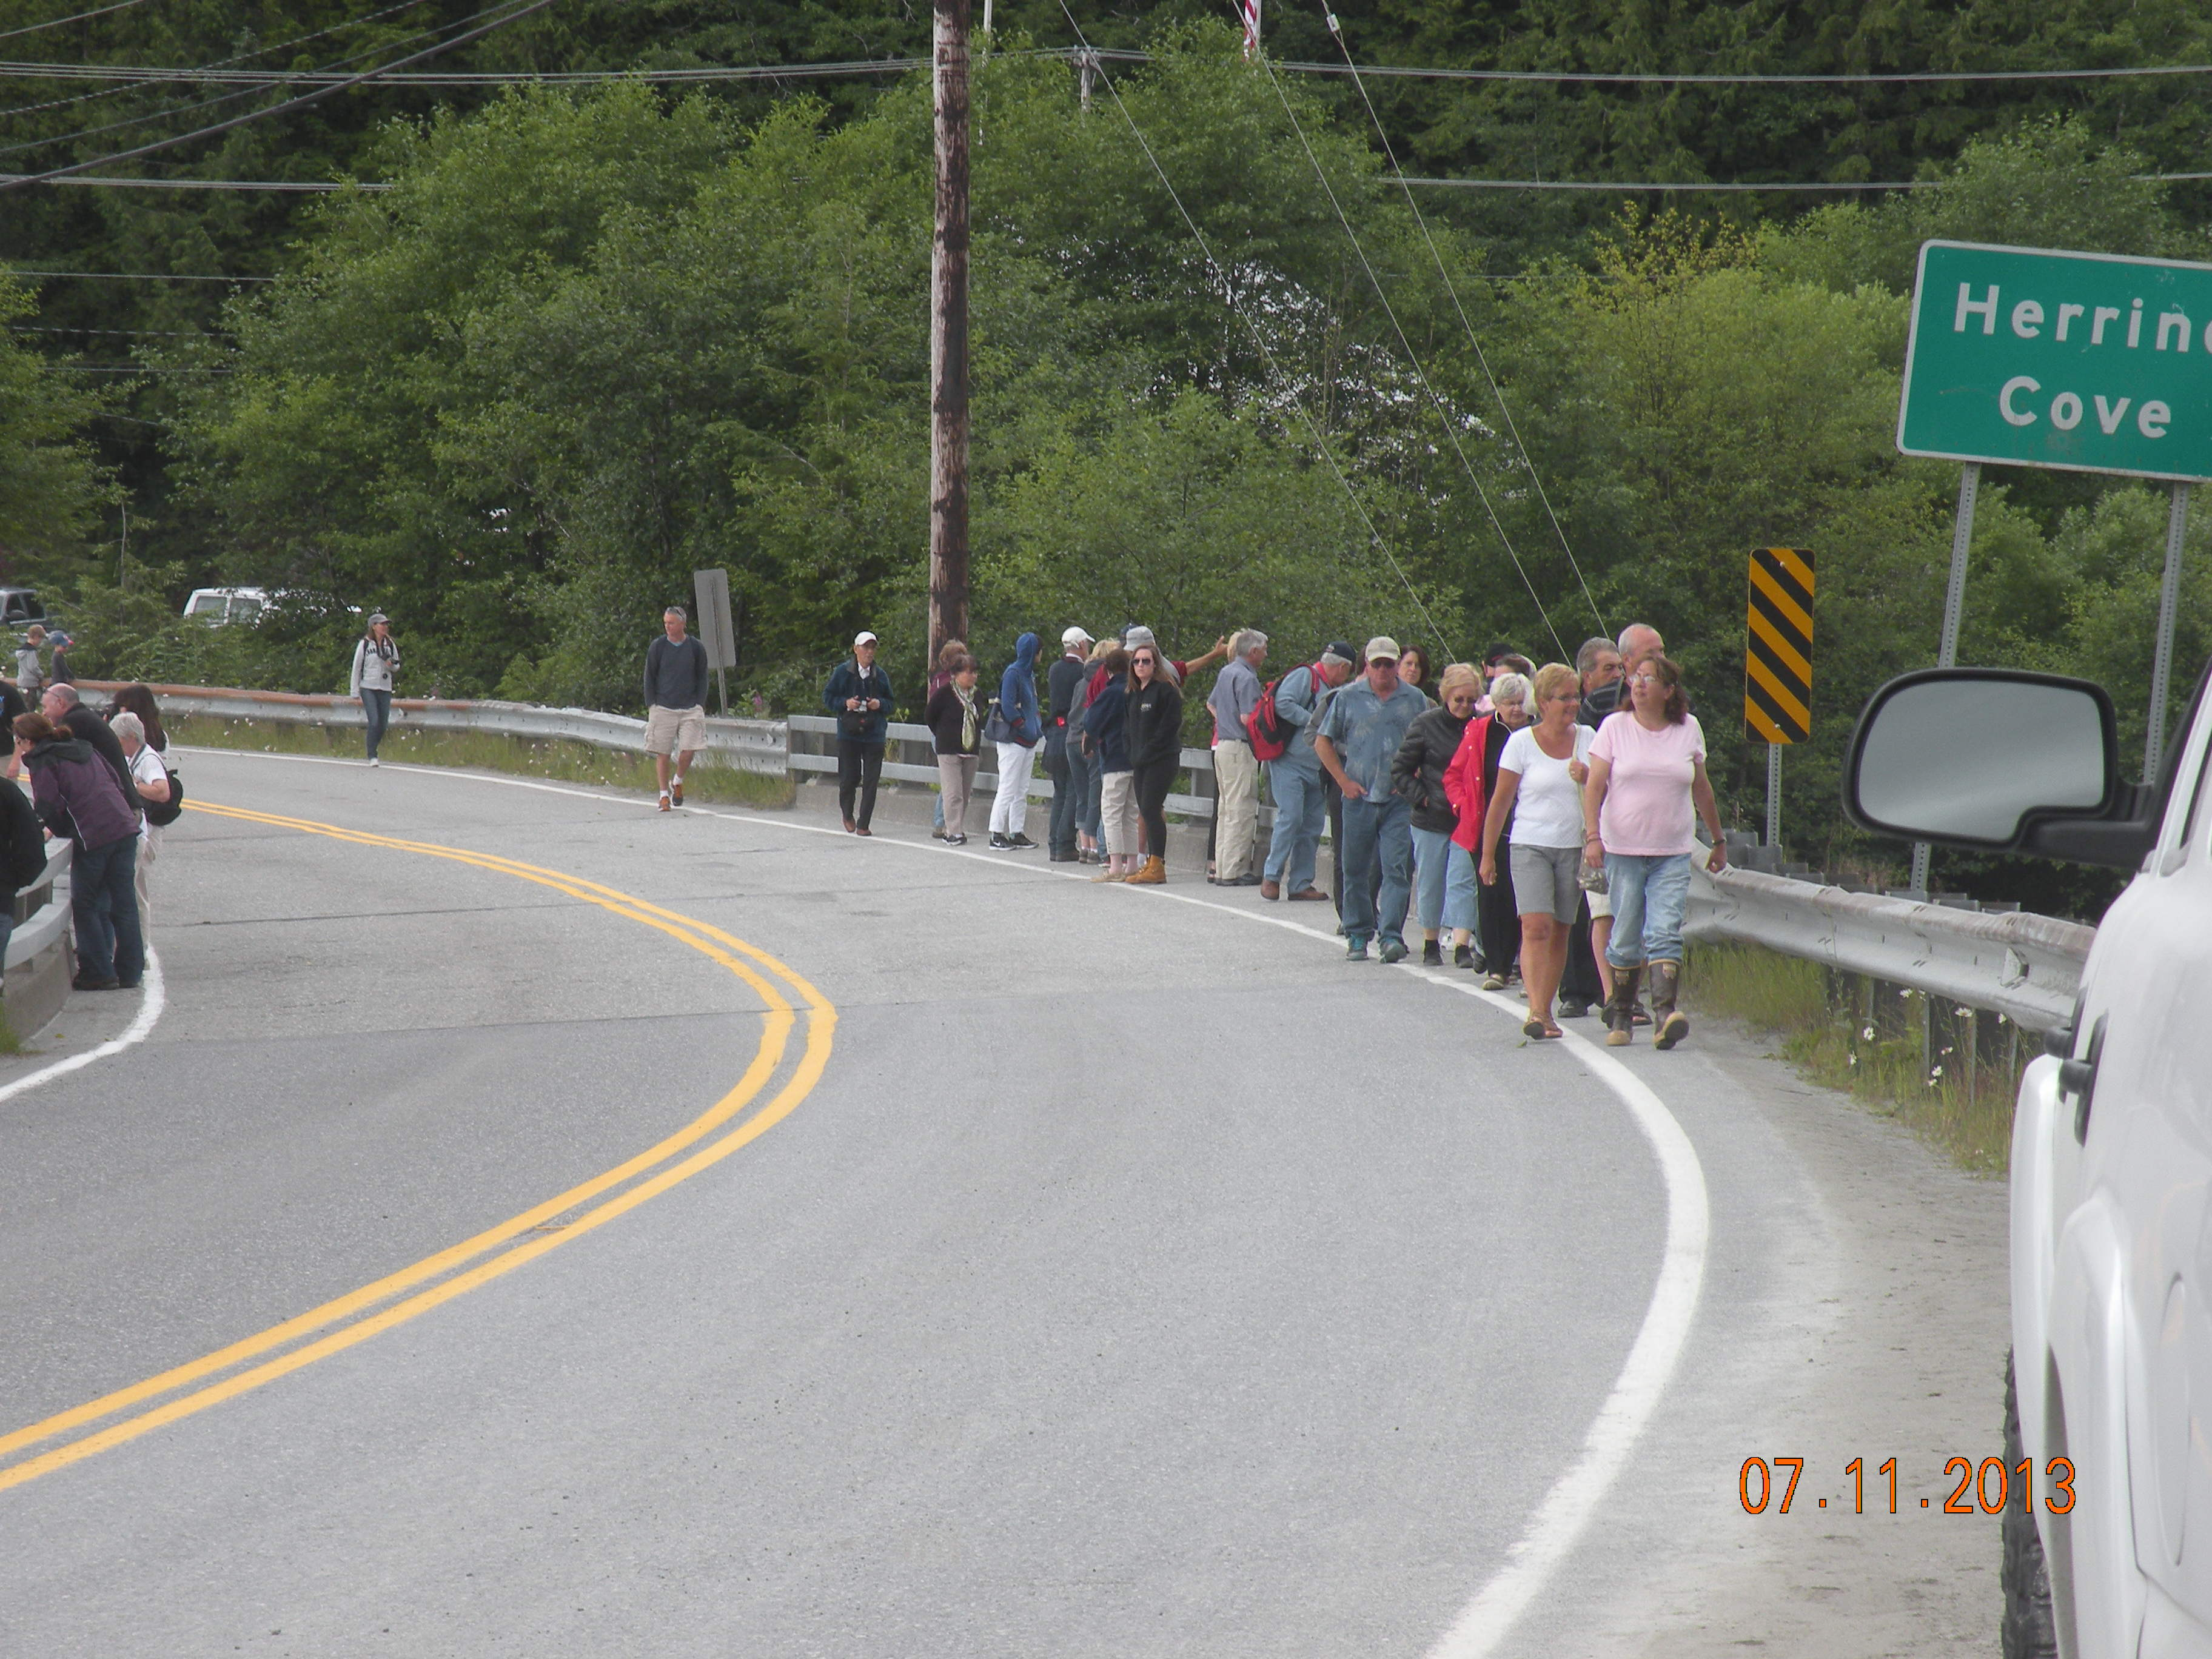 Pedestrians on the bridge at Herring Cove